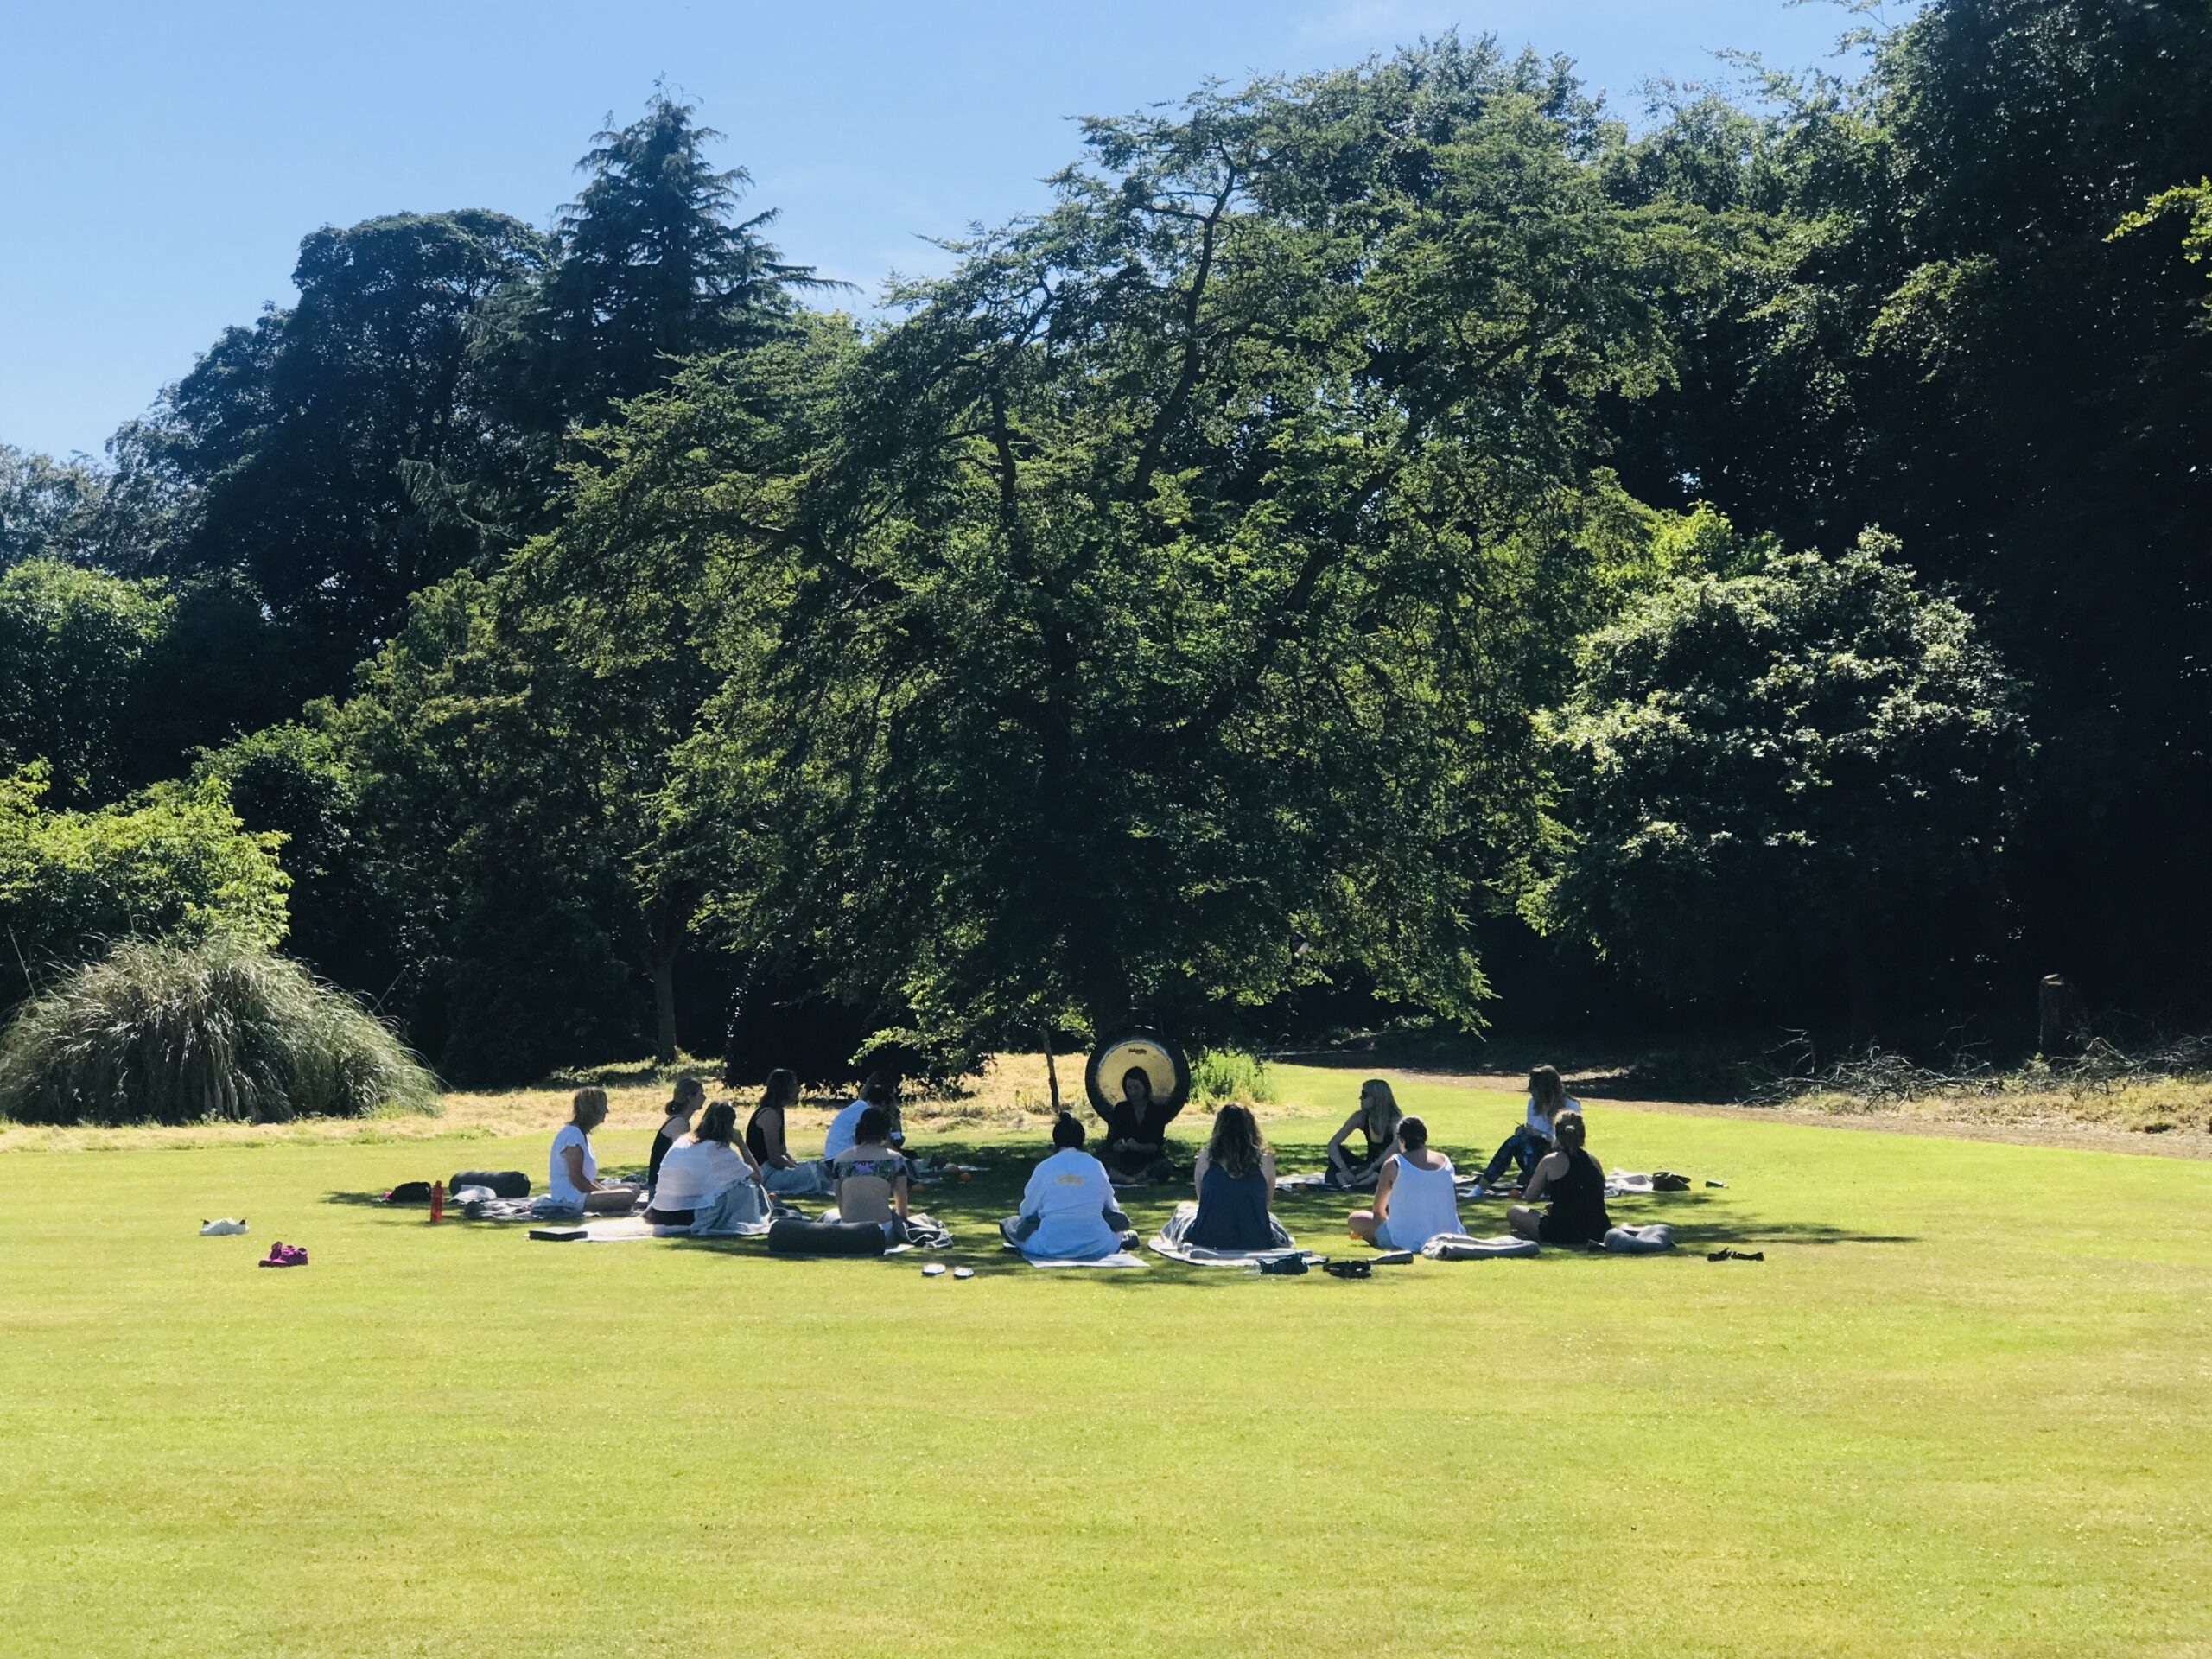 Summer Solstice Yoga retreat day at YogaSpace Yorkshire